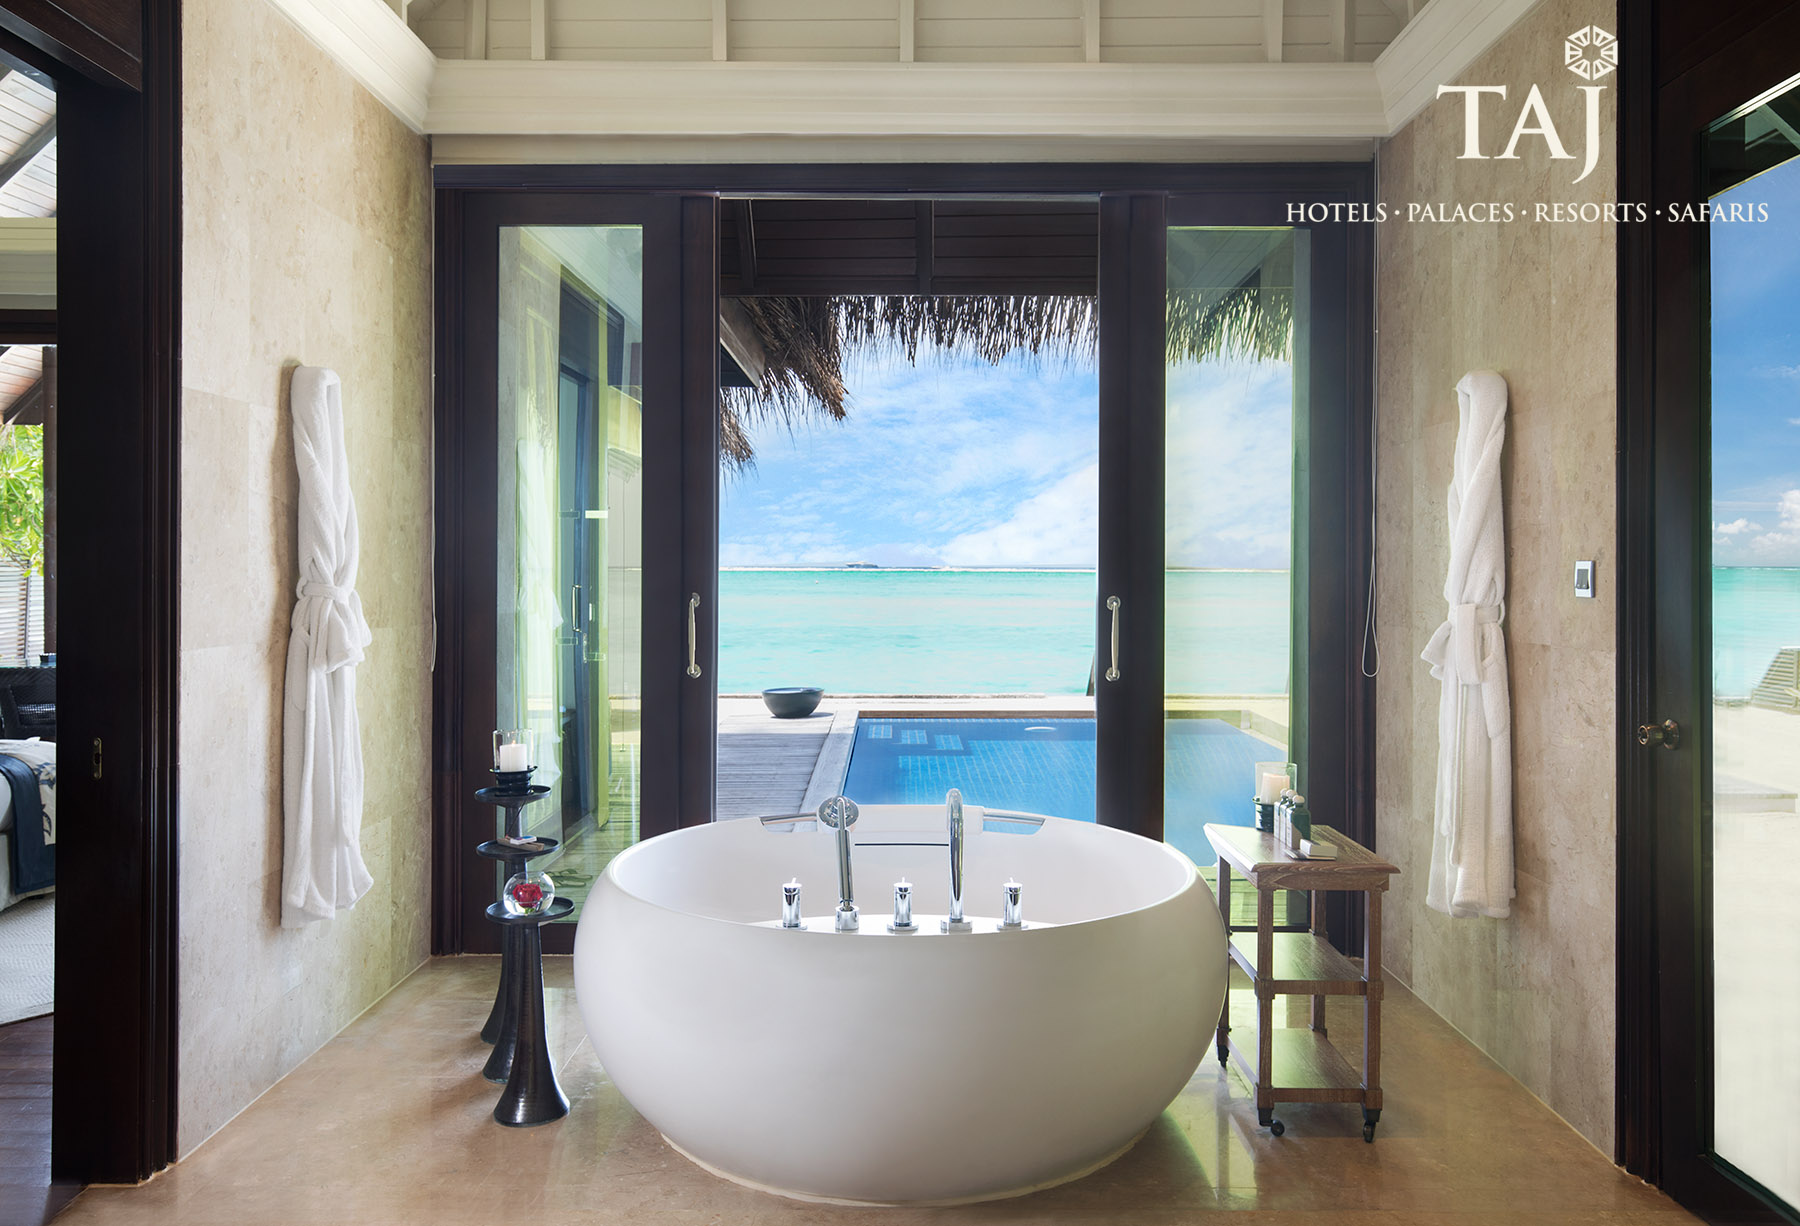 Interiors shoot at Taj Exotica Resort, Maldives, by Peter Jackson